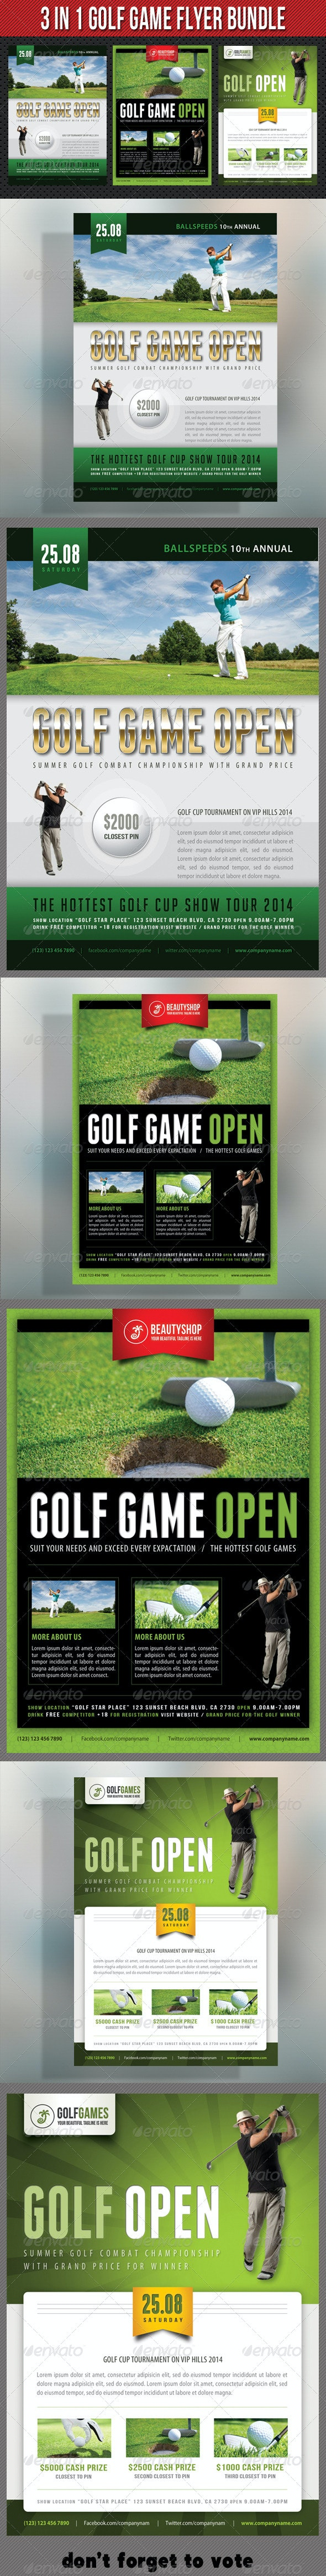 3 in 1 Golf Game Flyer Bundle 03 - Sports Events